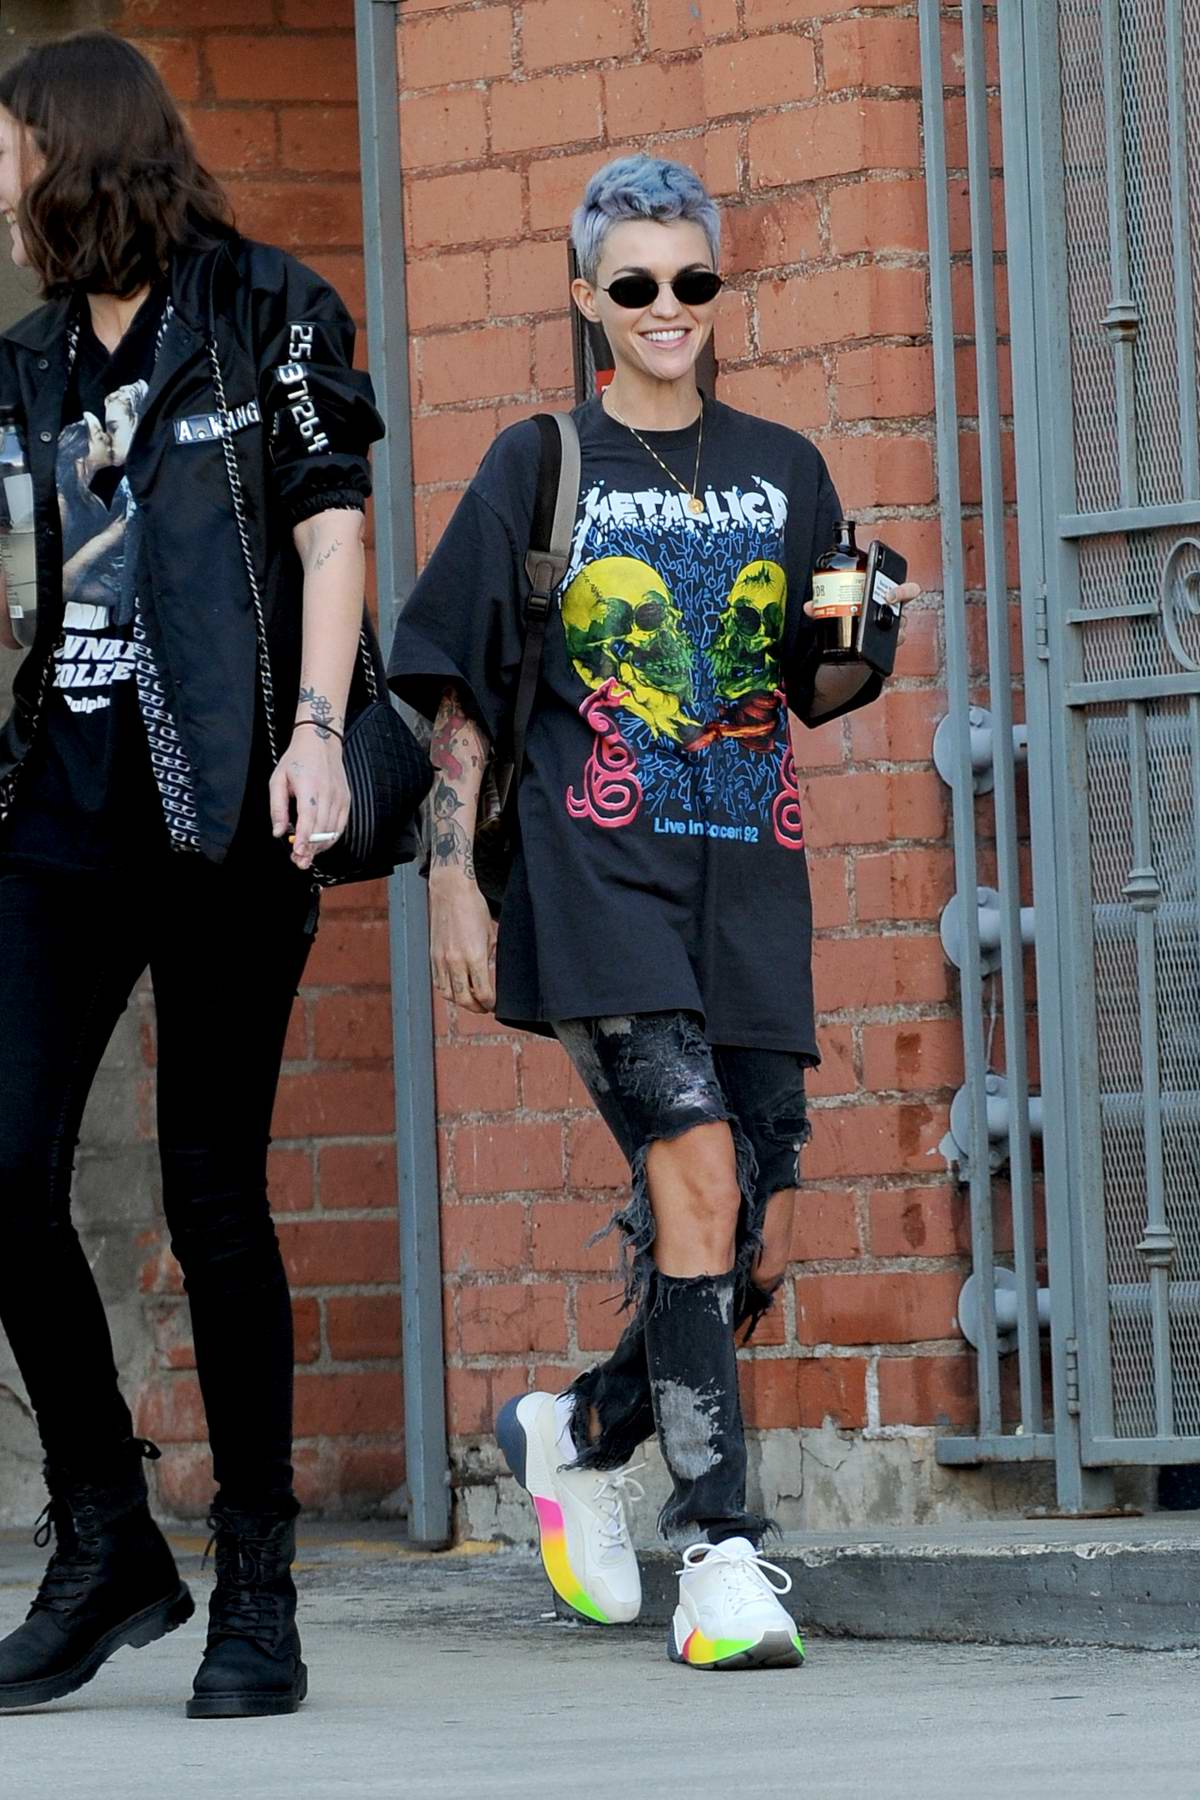 Ruby Rose shows off her new blue haido with her punk rock look while out in Beverly Hills, Los Angeles